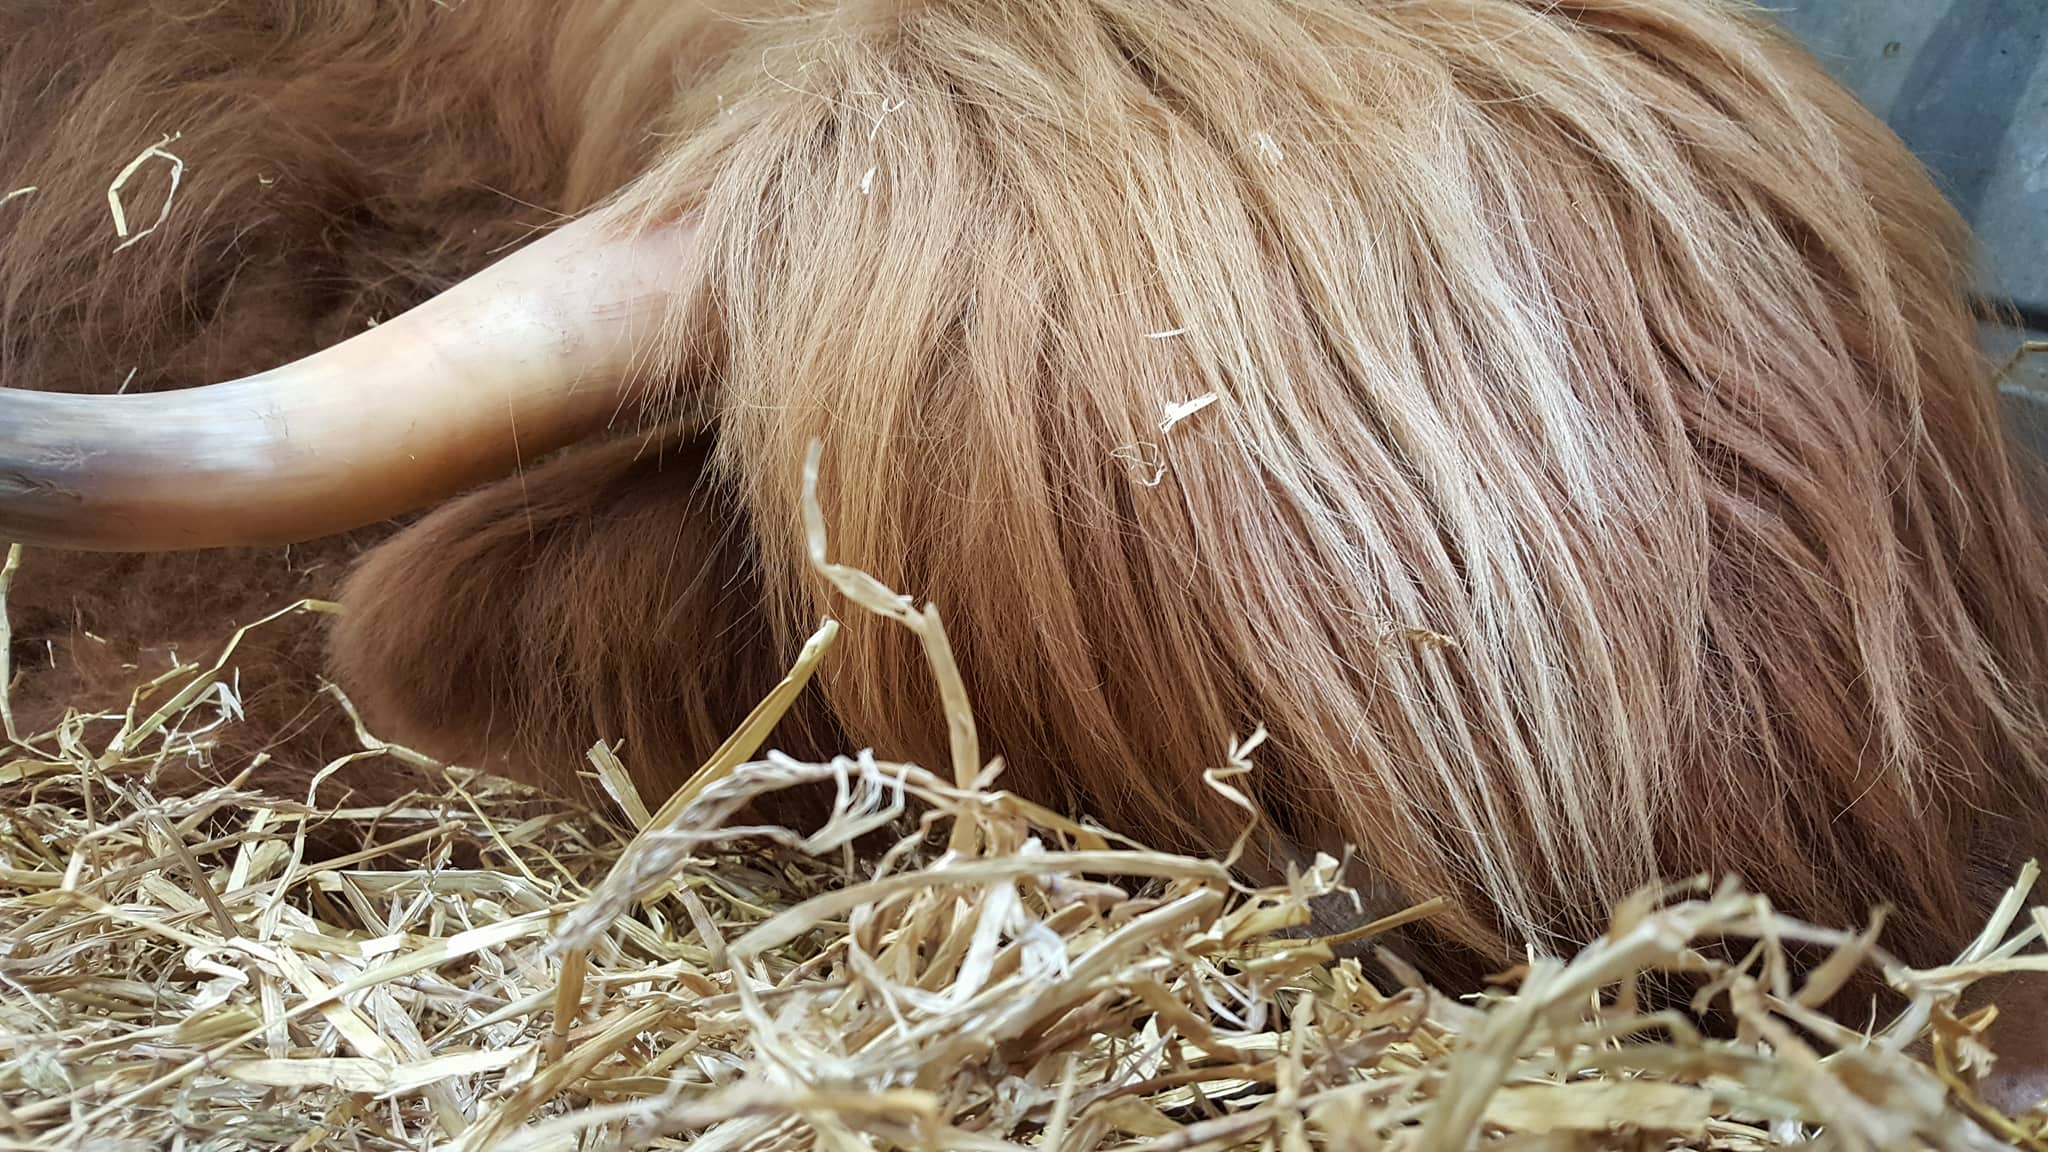 Sleepy coo at the Royal Highland Show in 2017 (photo Bianca Sala)